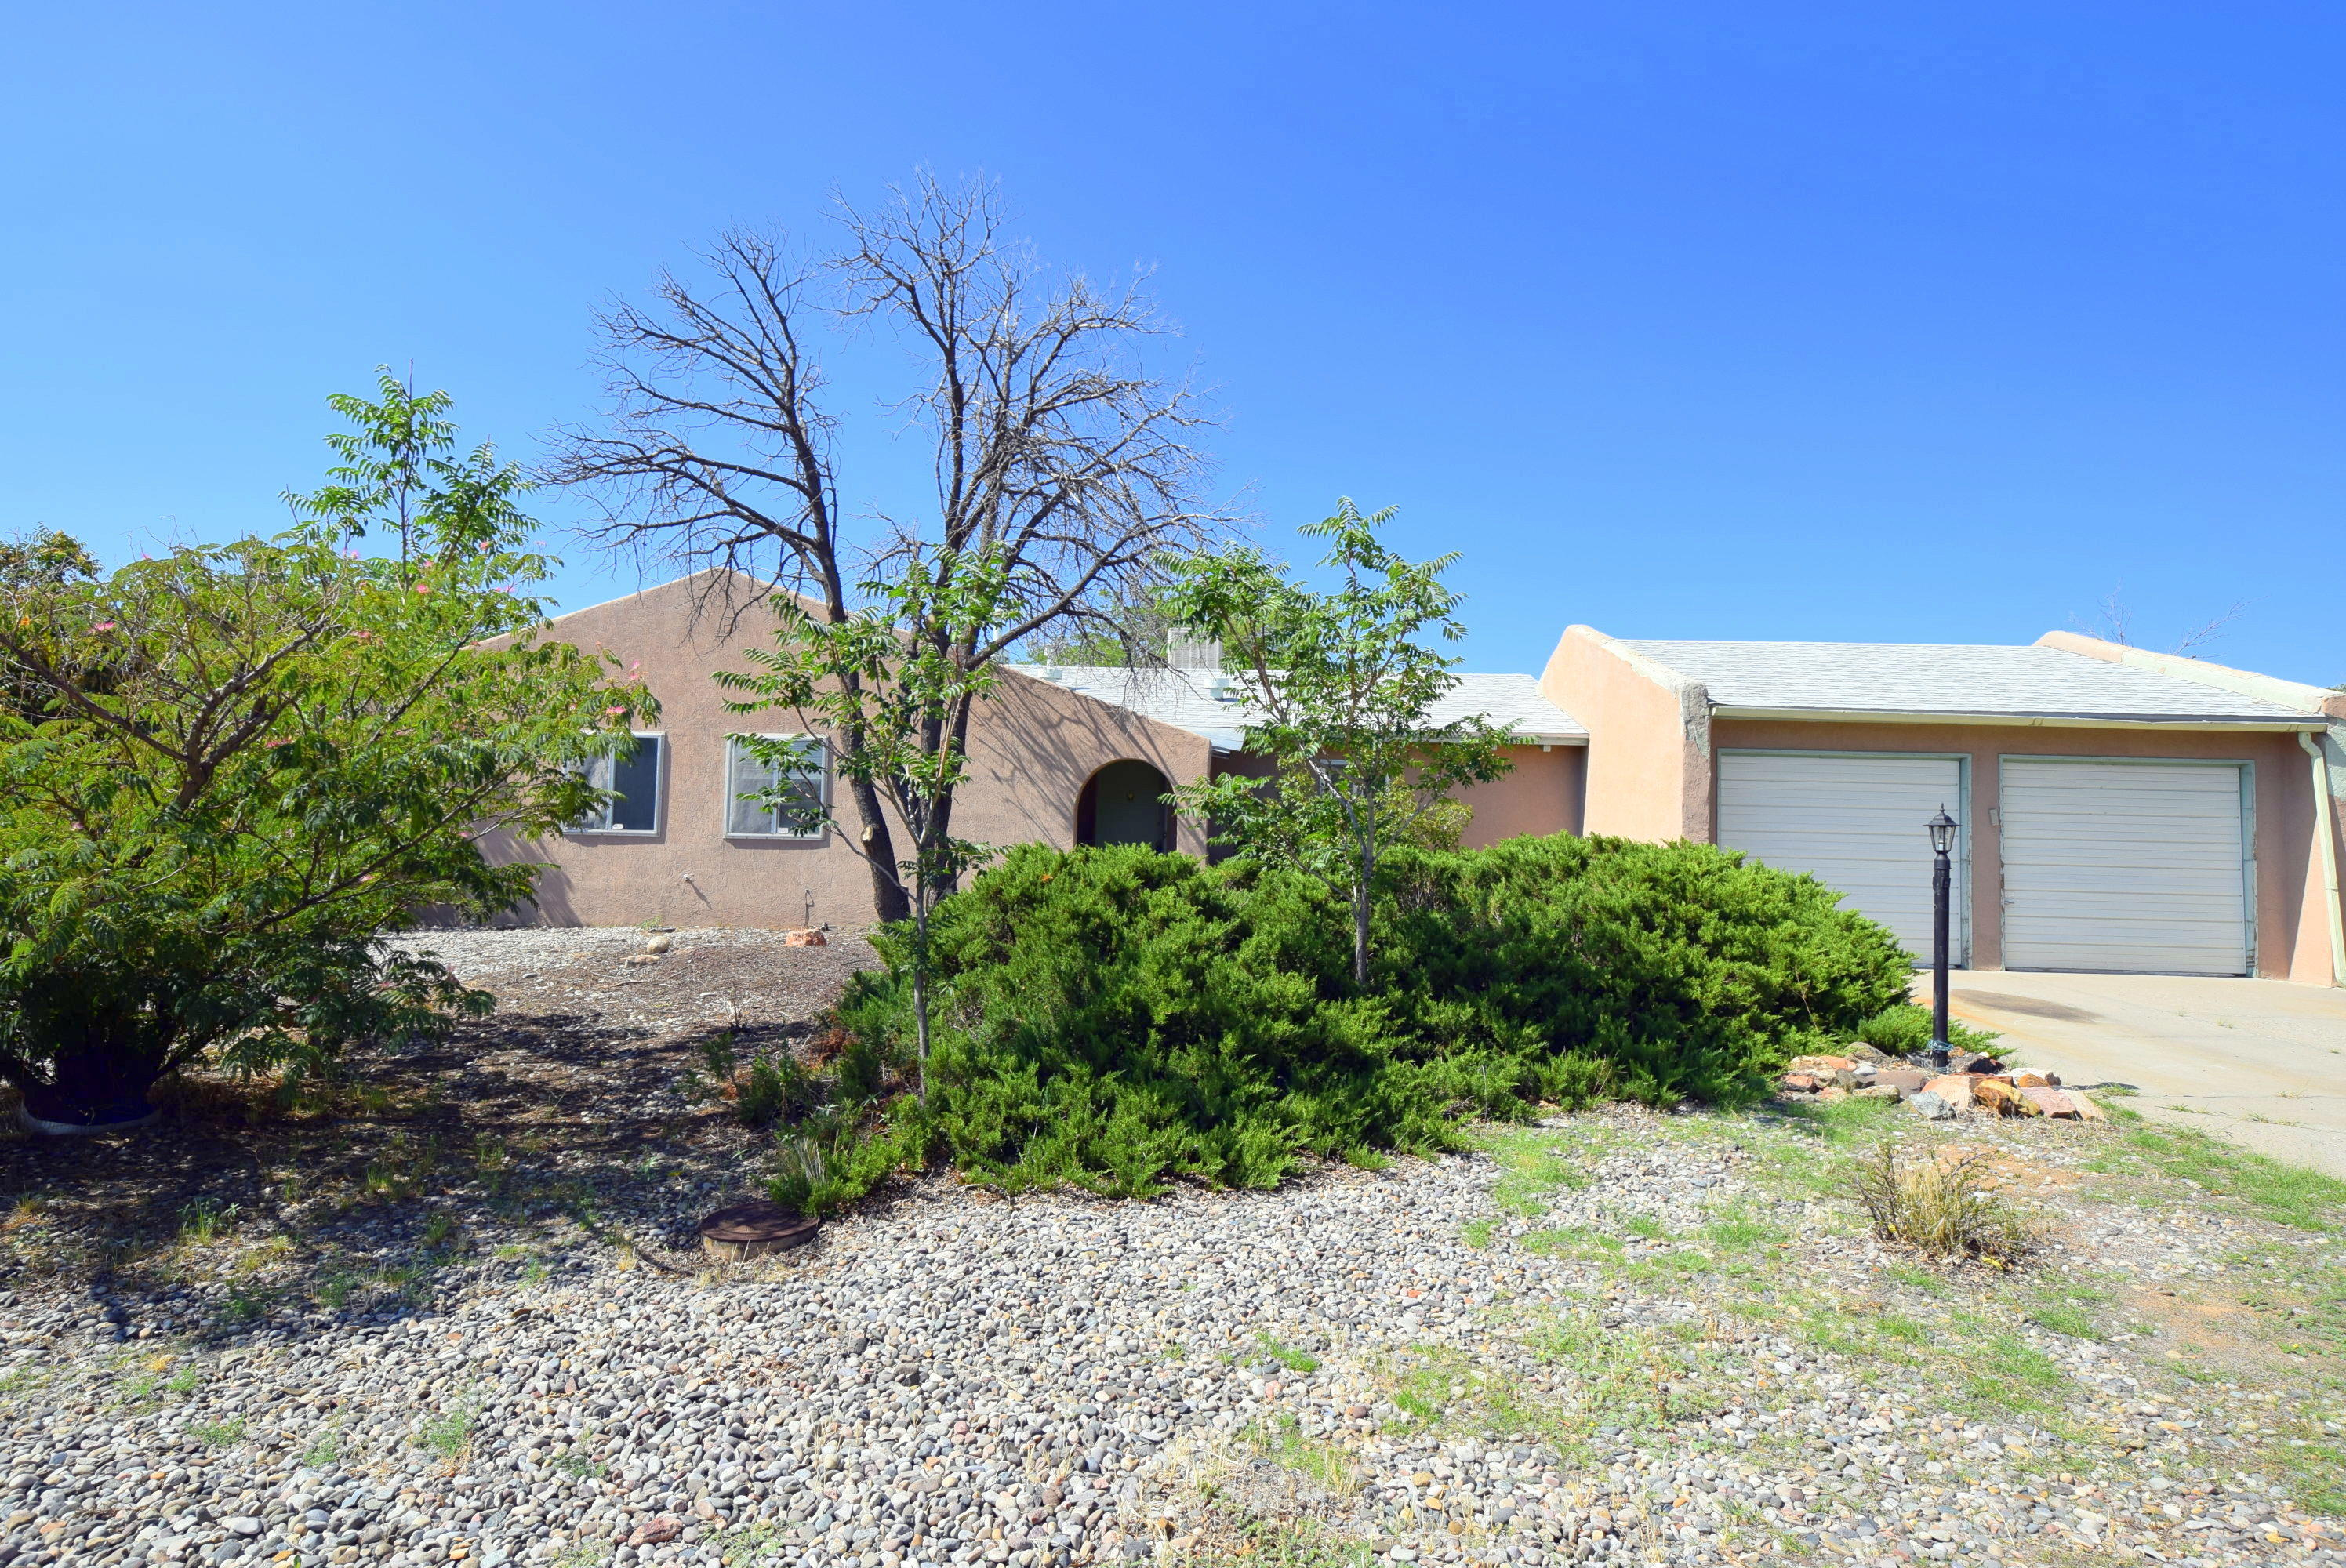 Great Deal on this starter home in Rio Rancho with unlimited potential.  Featuring 3 large bedrooms, updated kitchen, huge backyard, no HOA, single level living.  Conveniently located near shopping & dining.  Don't miss out on this excellent deal in Rio Rancho.